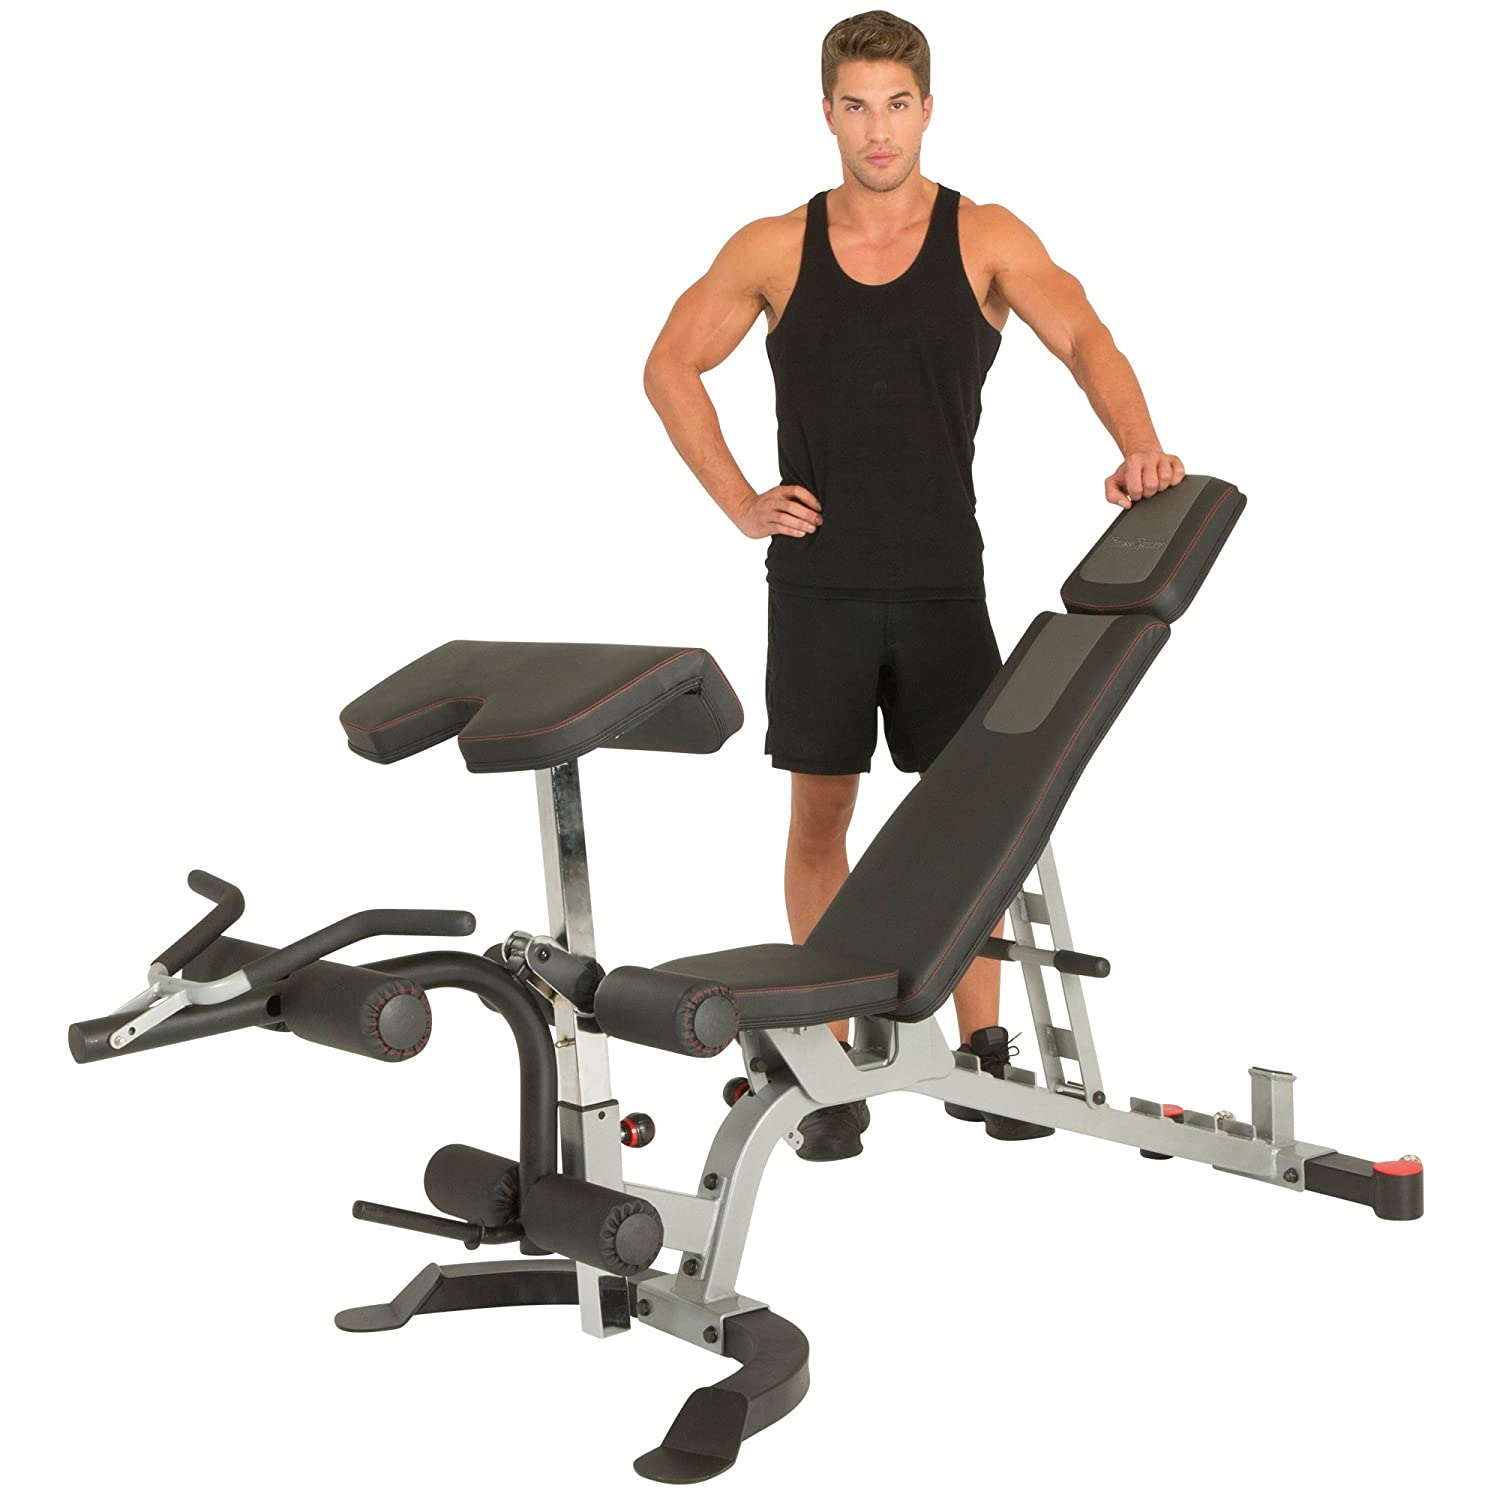 two weight rack body com bowflex b bench set workout olympic with squat piece amazon benches champ